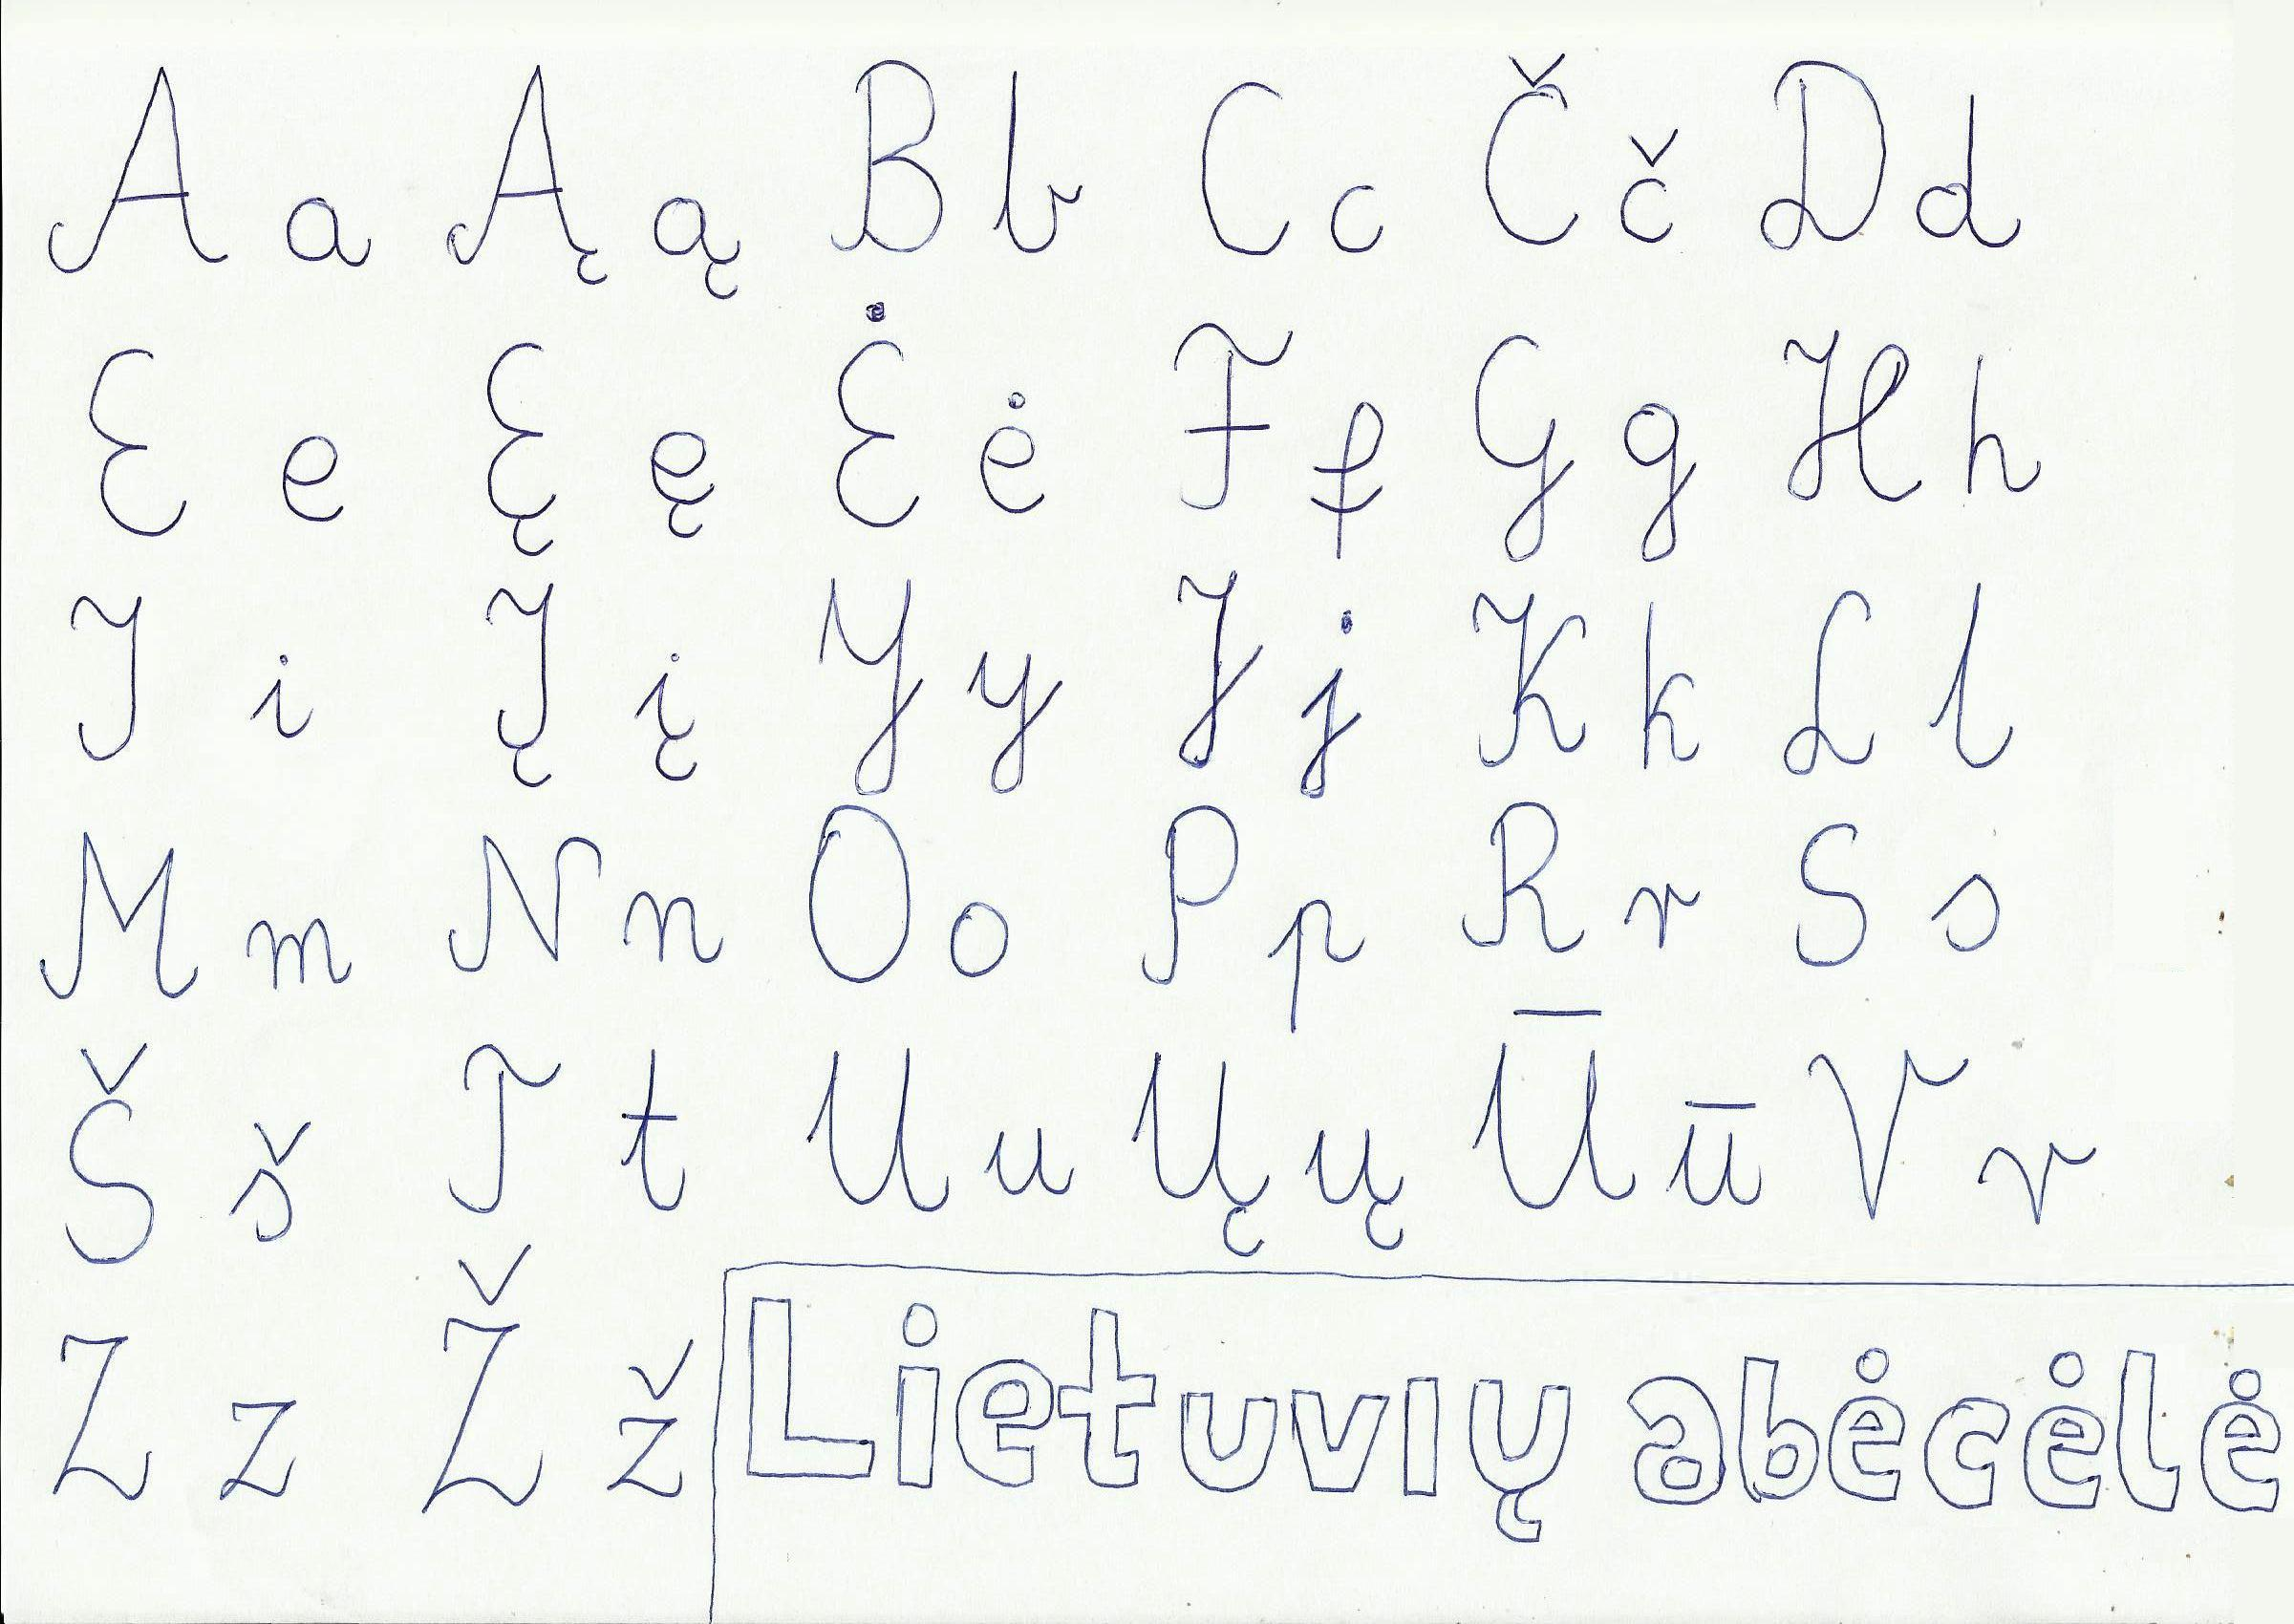 Worksheet Handwritten Alphabet filelithuanian handwritten alphabet jpg wikimedia commons jpg